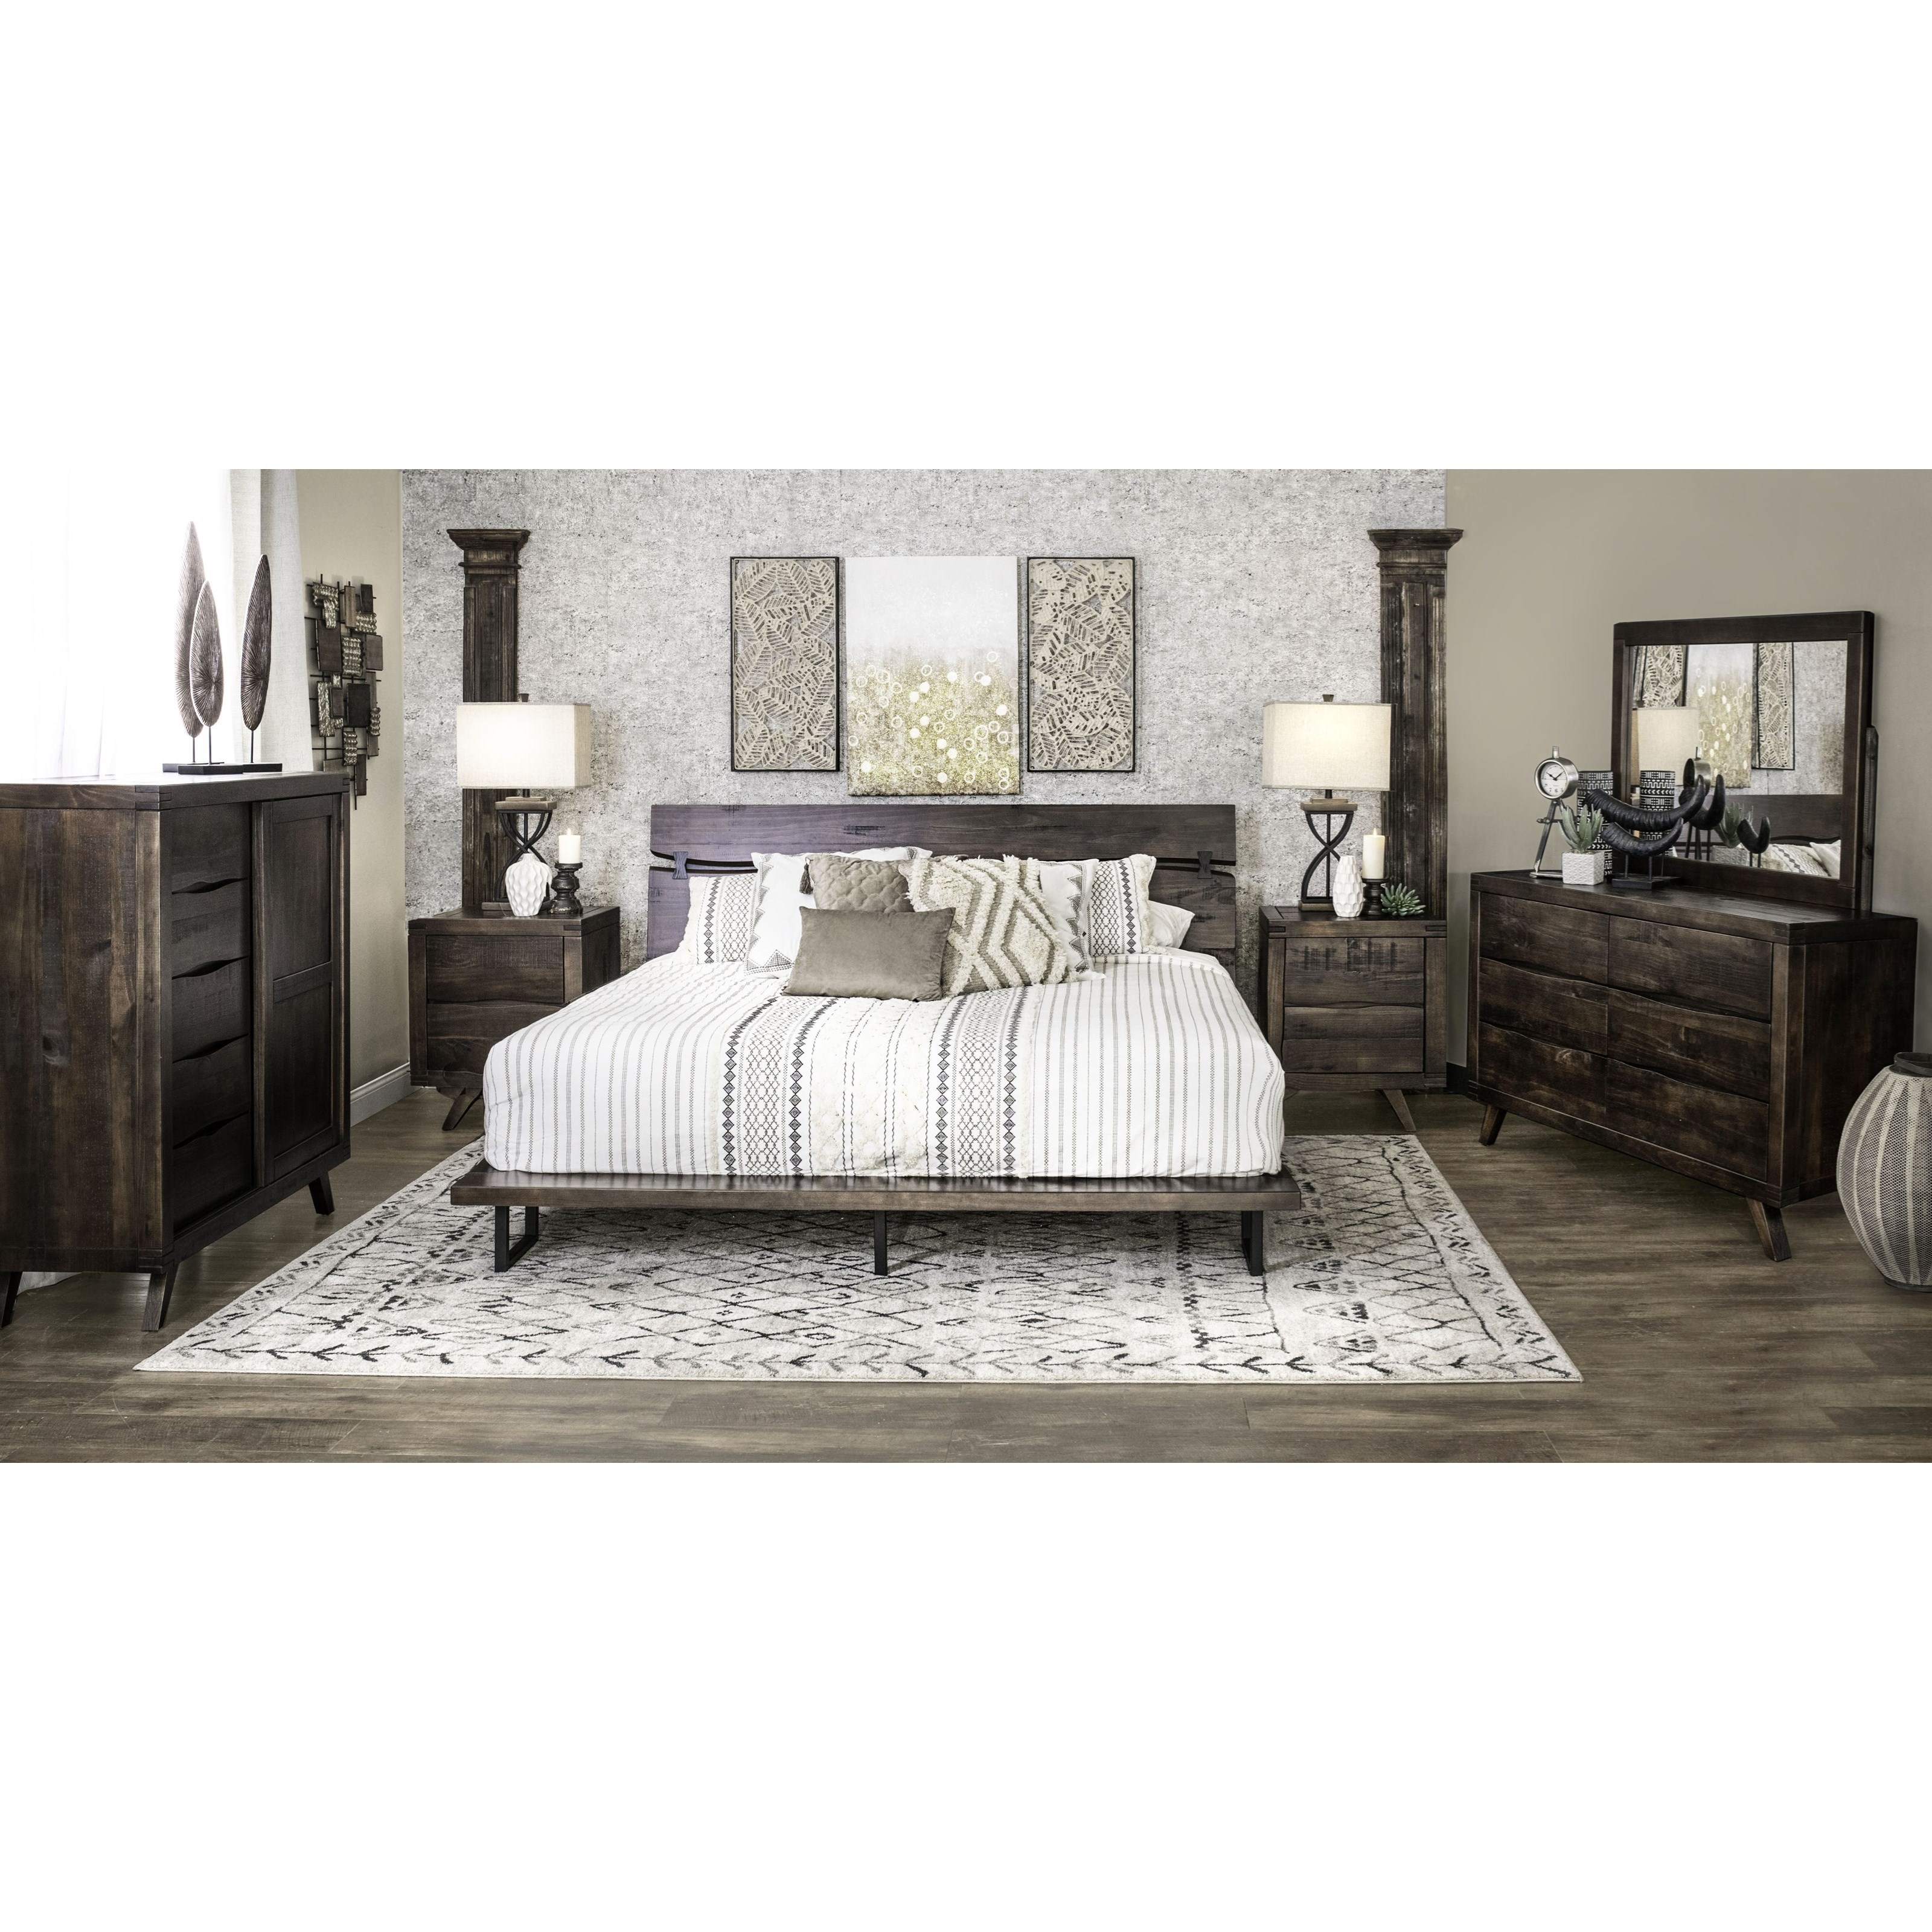 Pasco King Bedroom Group by Steve Silver at Northeast Factory Direct